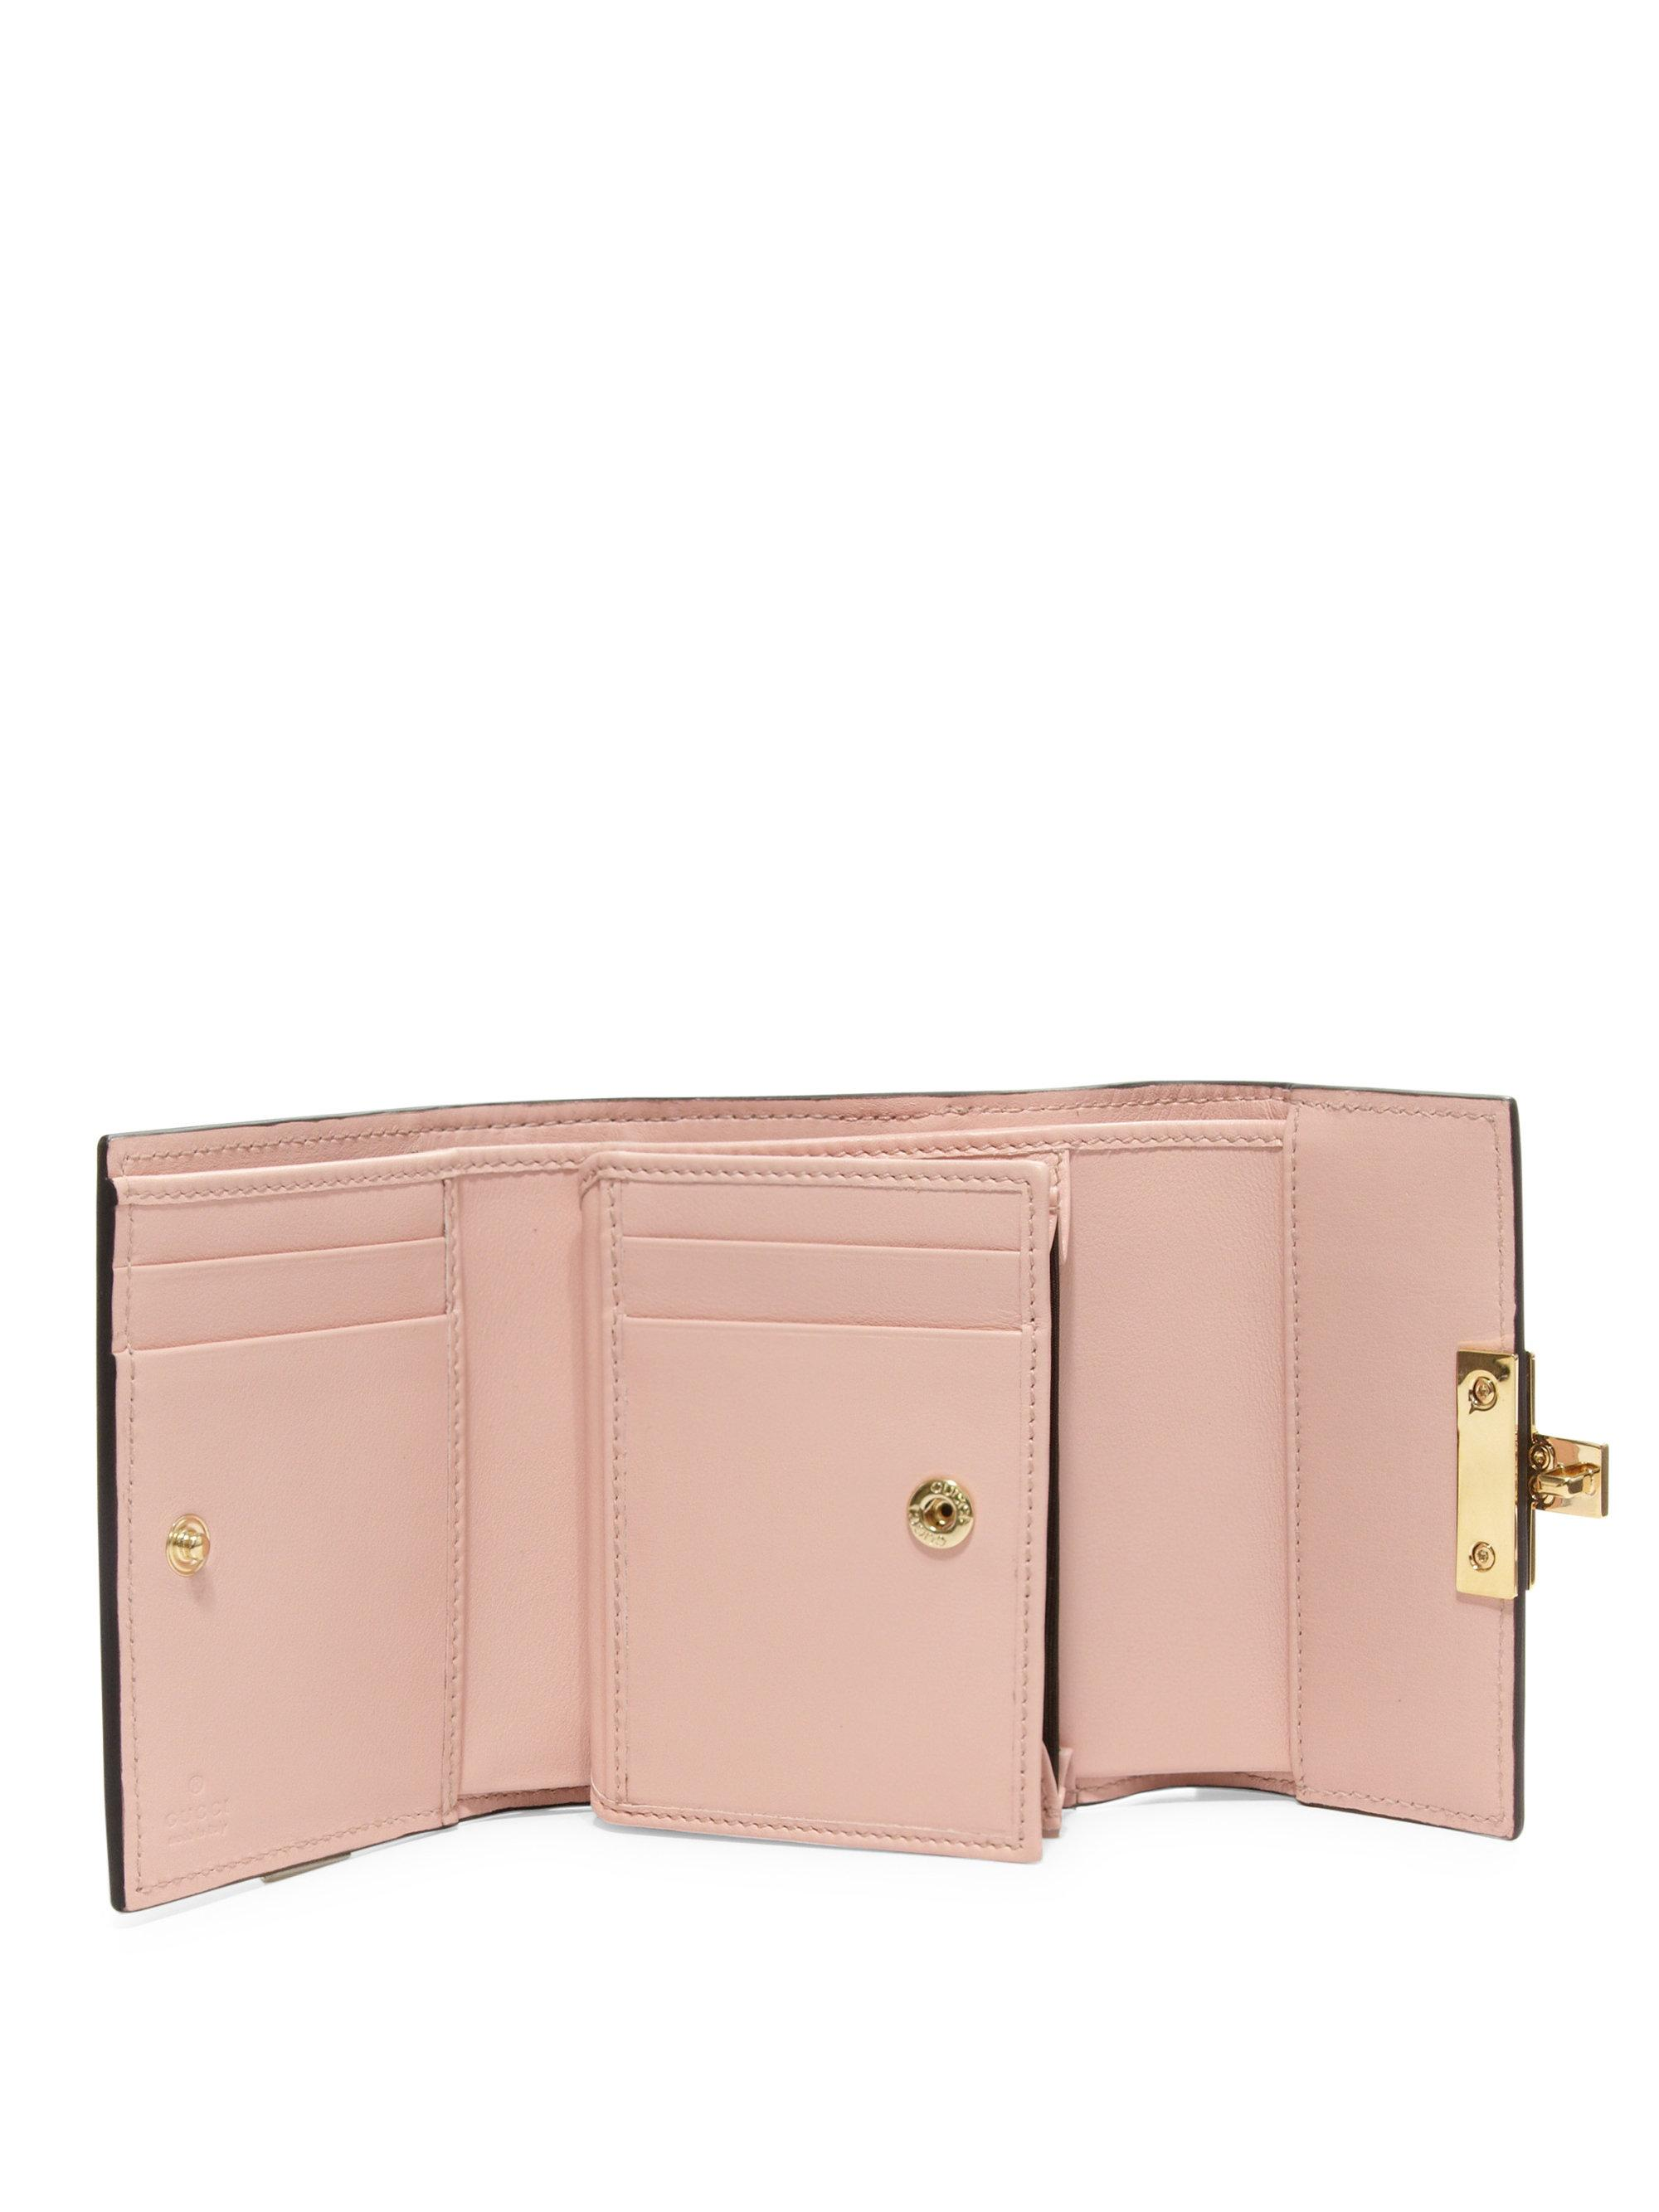 57d2d1ab4cc Lyst - Gucci Padlock Gg Supreme Leather French Flap Wallet in Pink